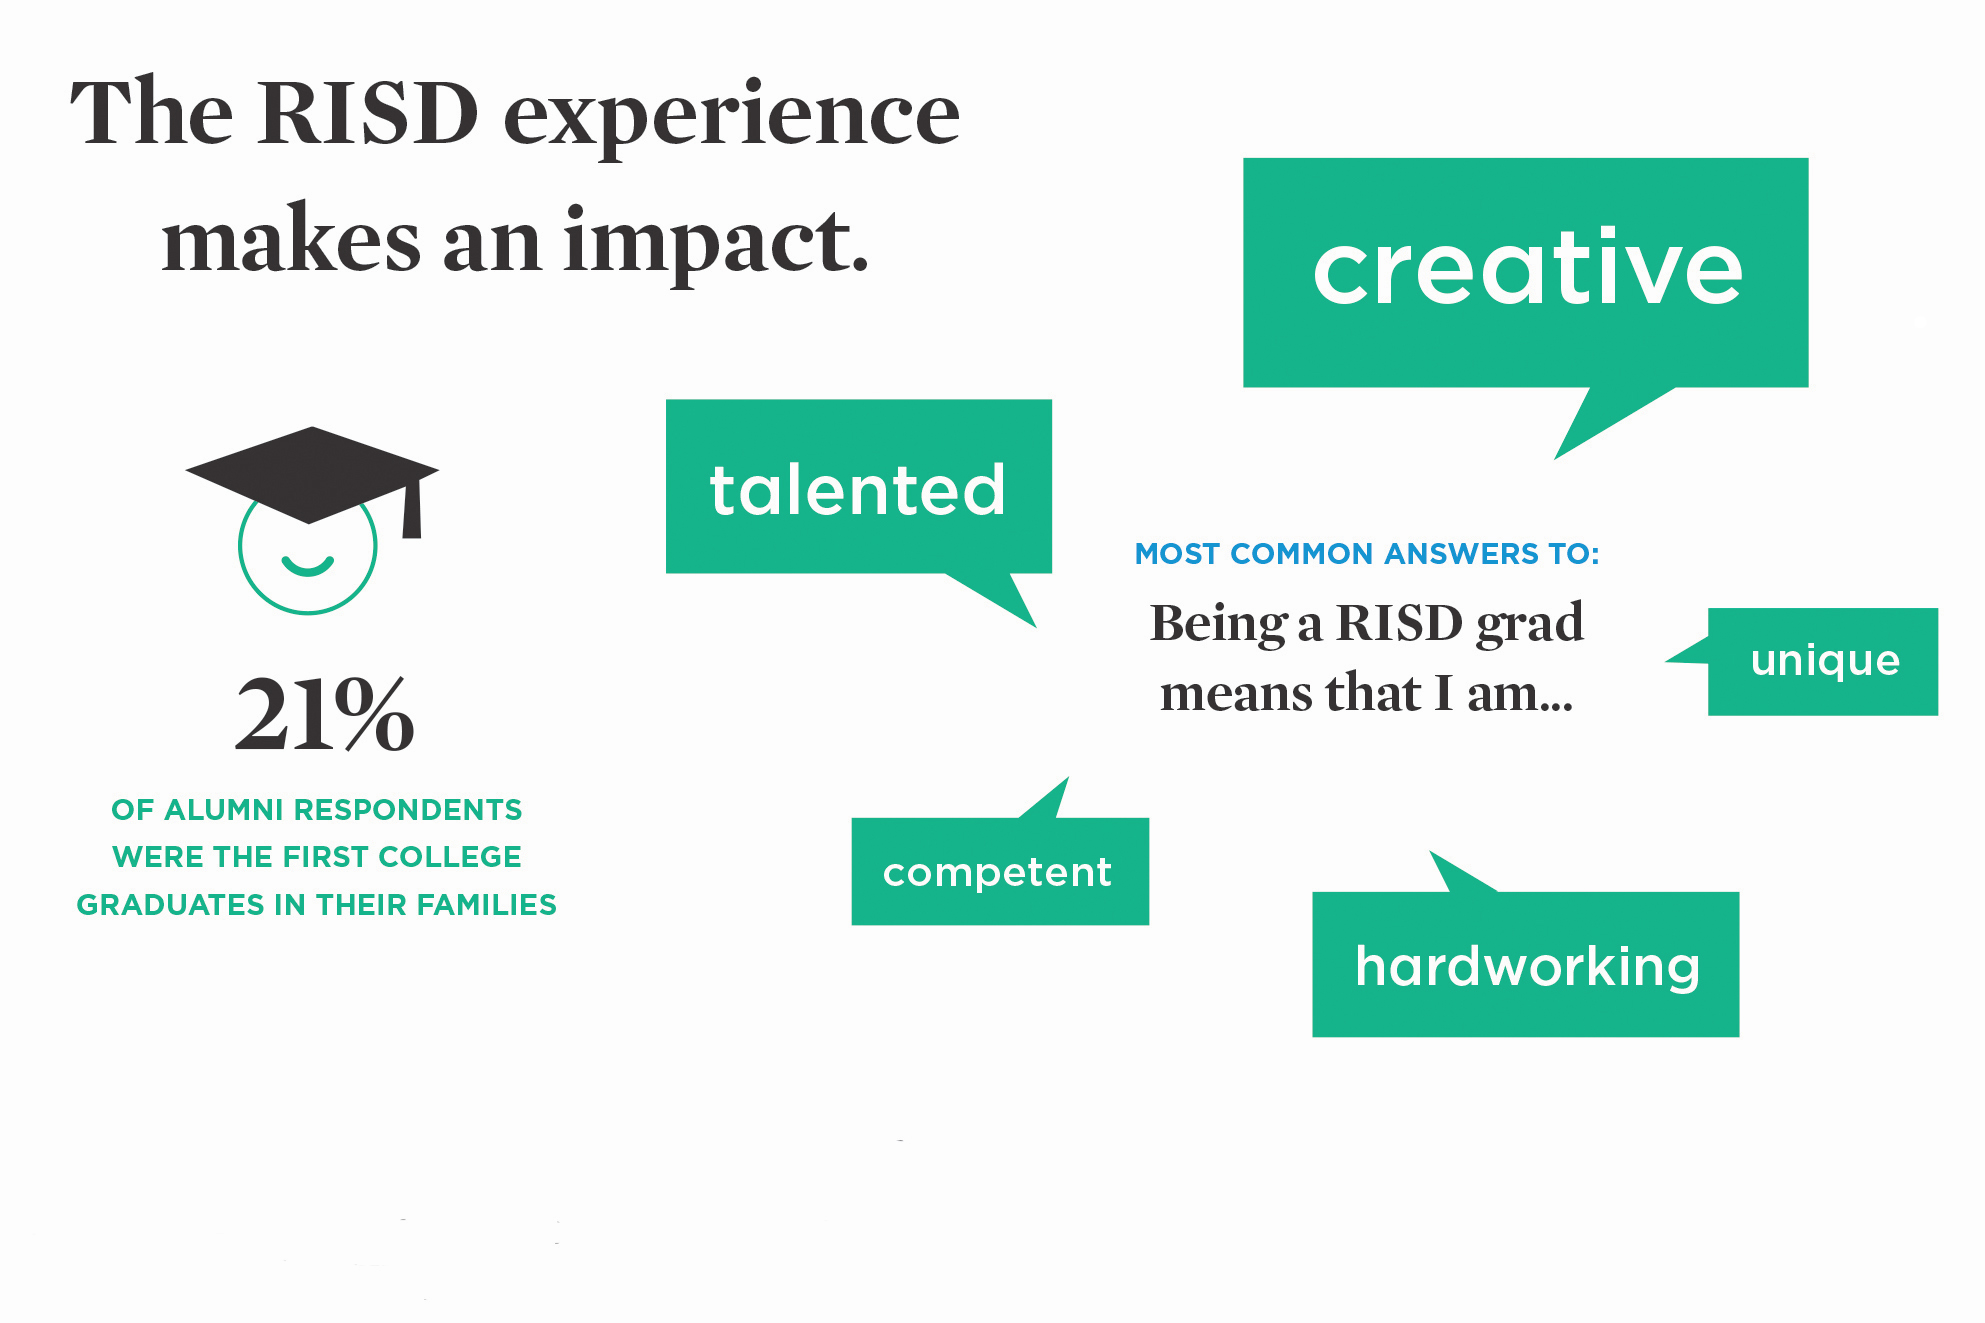 Infographic from 2018 alumni survey depicting how respondents described themselves (creative, talented, hardworking, competent and unique).